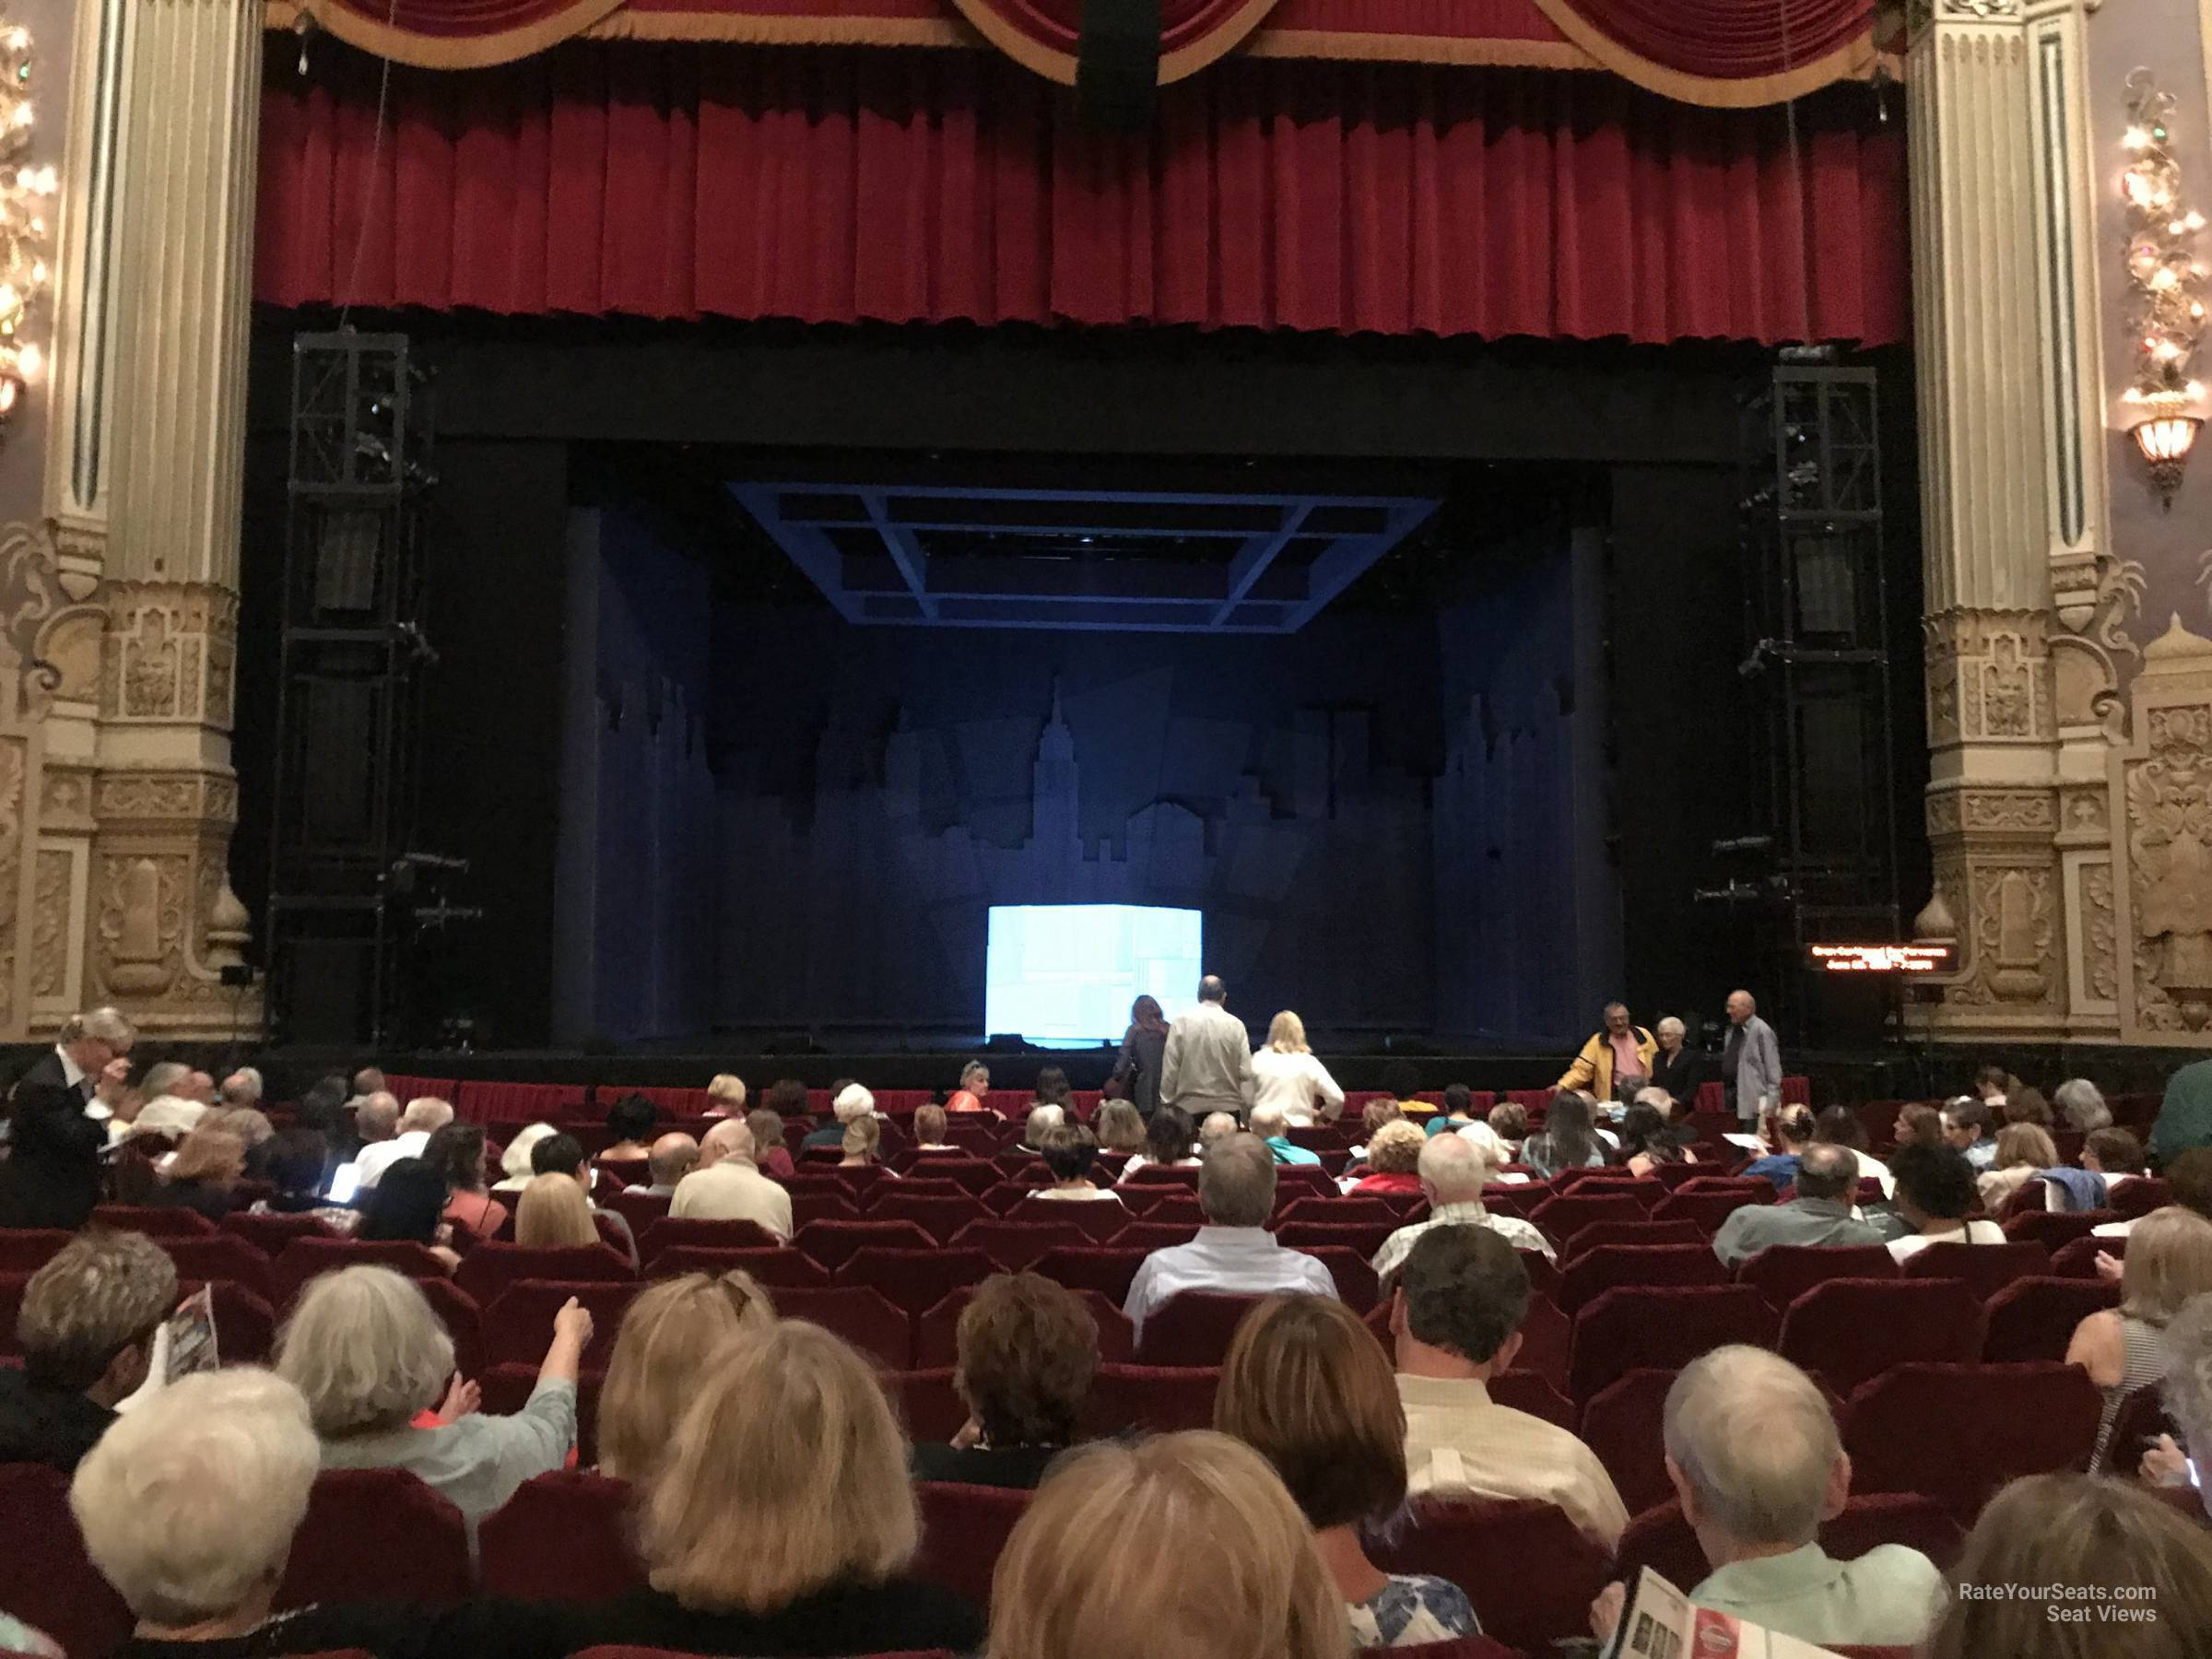 Orchestra Center seat view